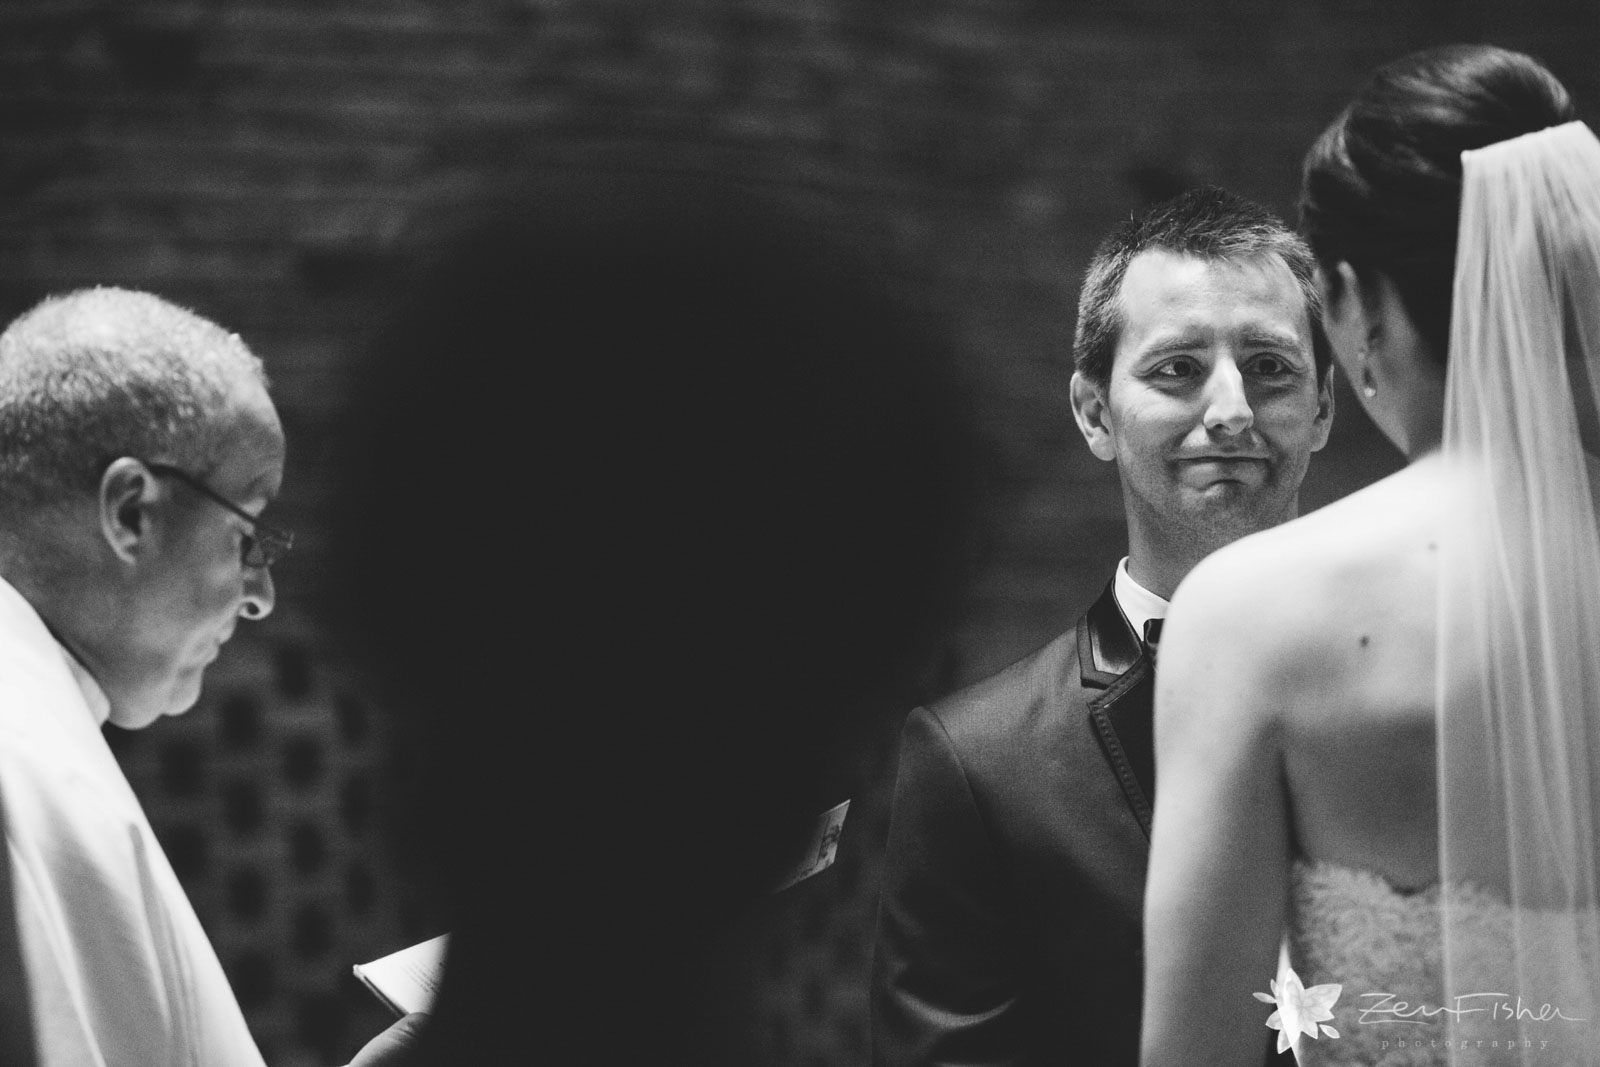 Groom holds back tears as he looks at his beautiful bride during the wedding ceremony.